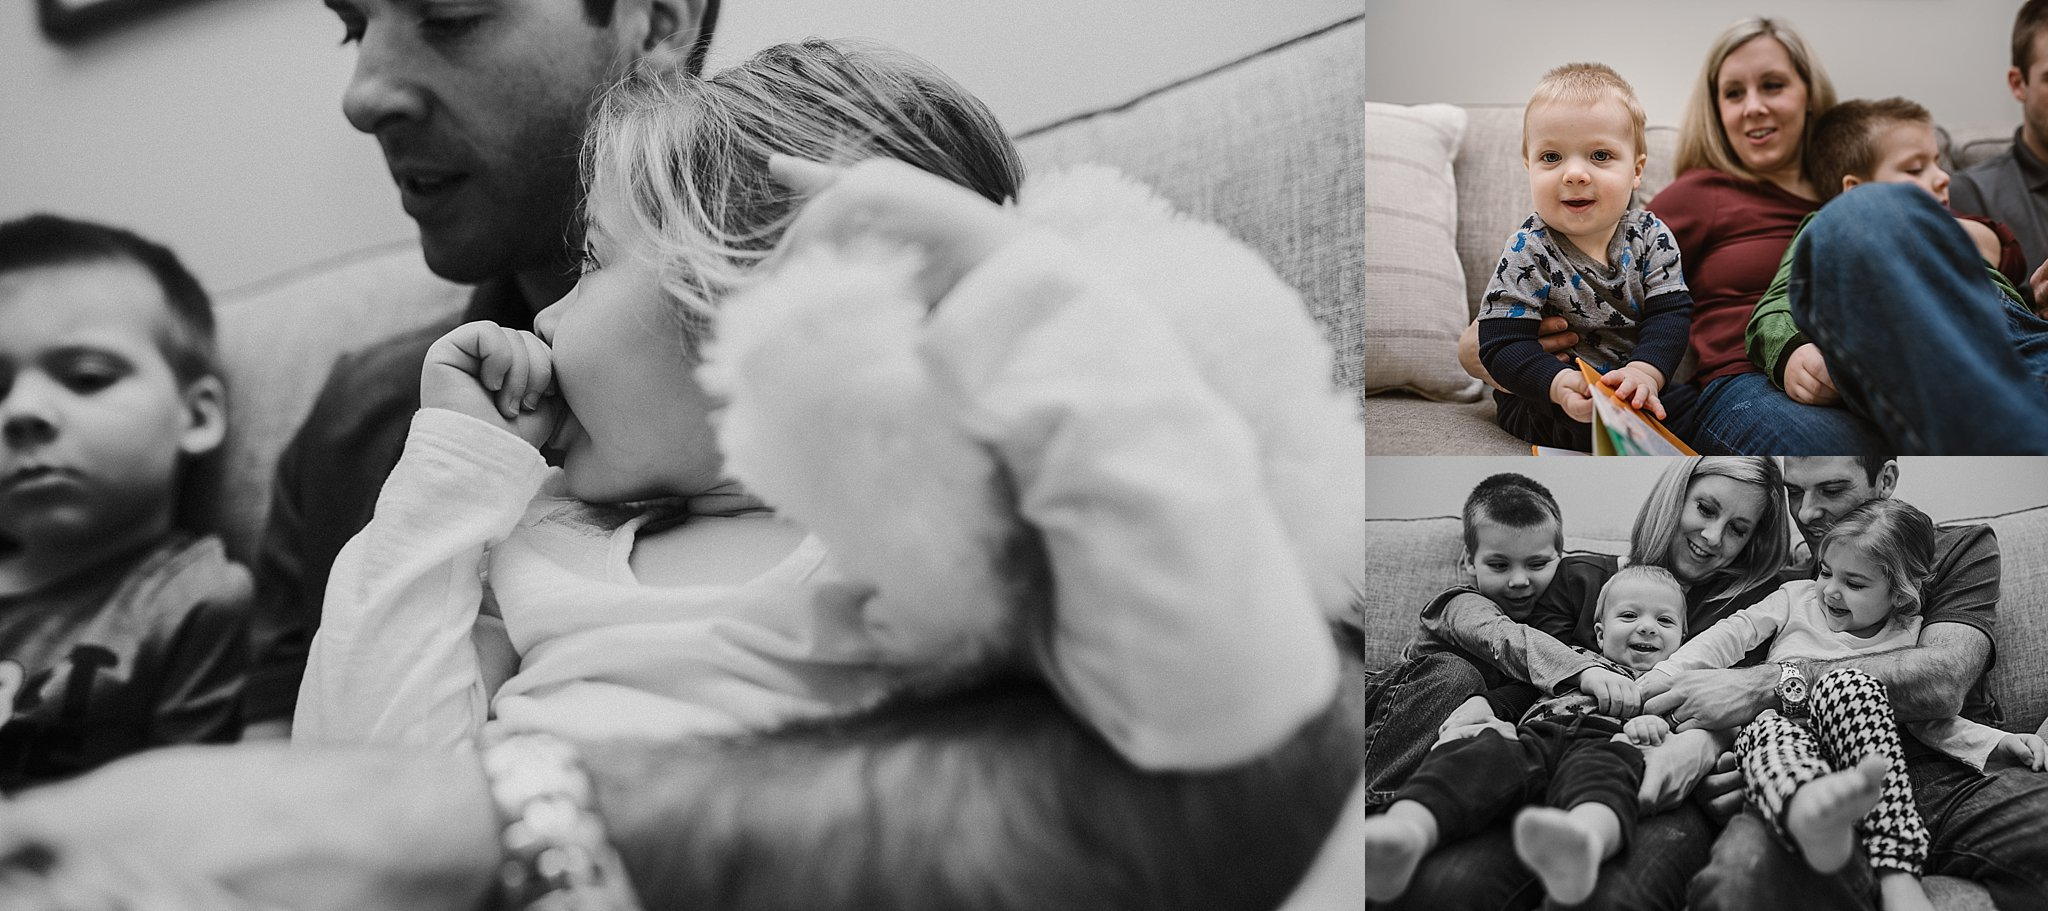 Family story time, in-home photography, lifestyle session